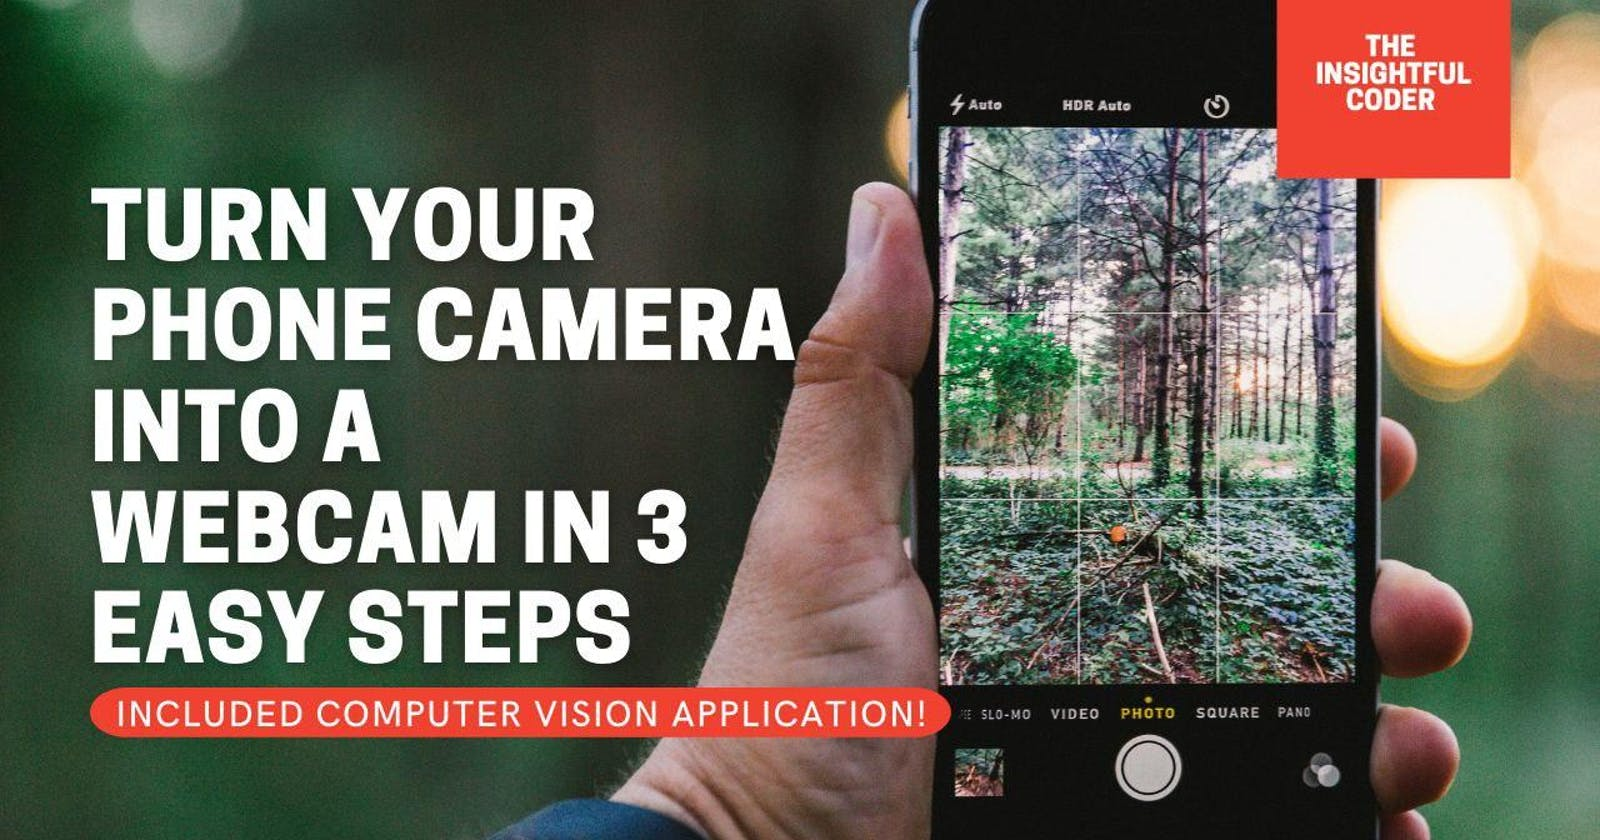 Turn Your Phone Camera Into a Webcam in 3 Easy Steps